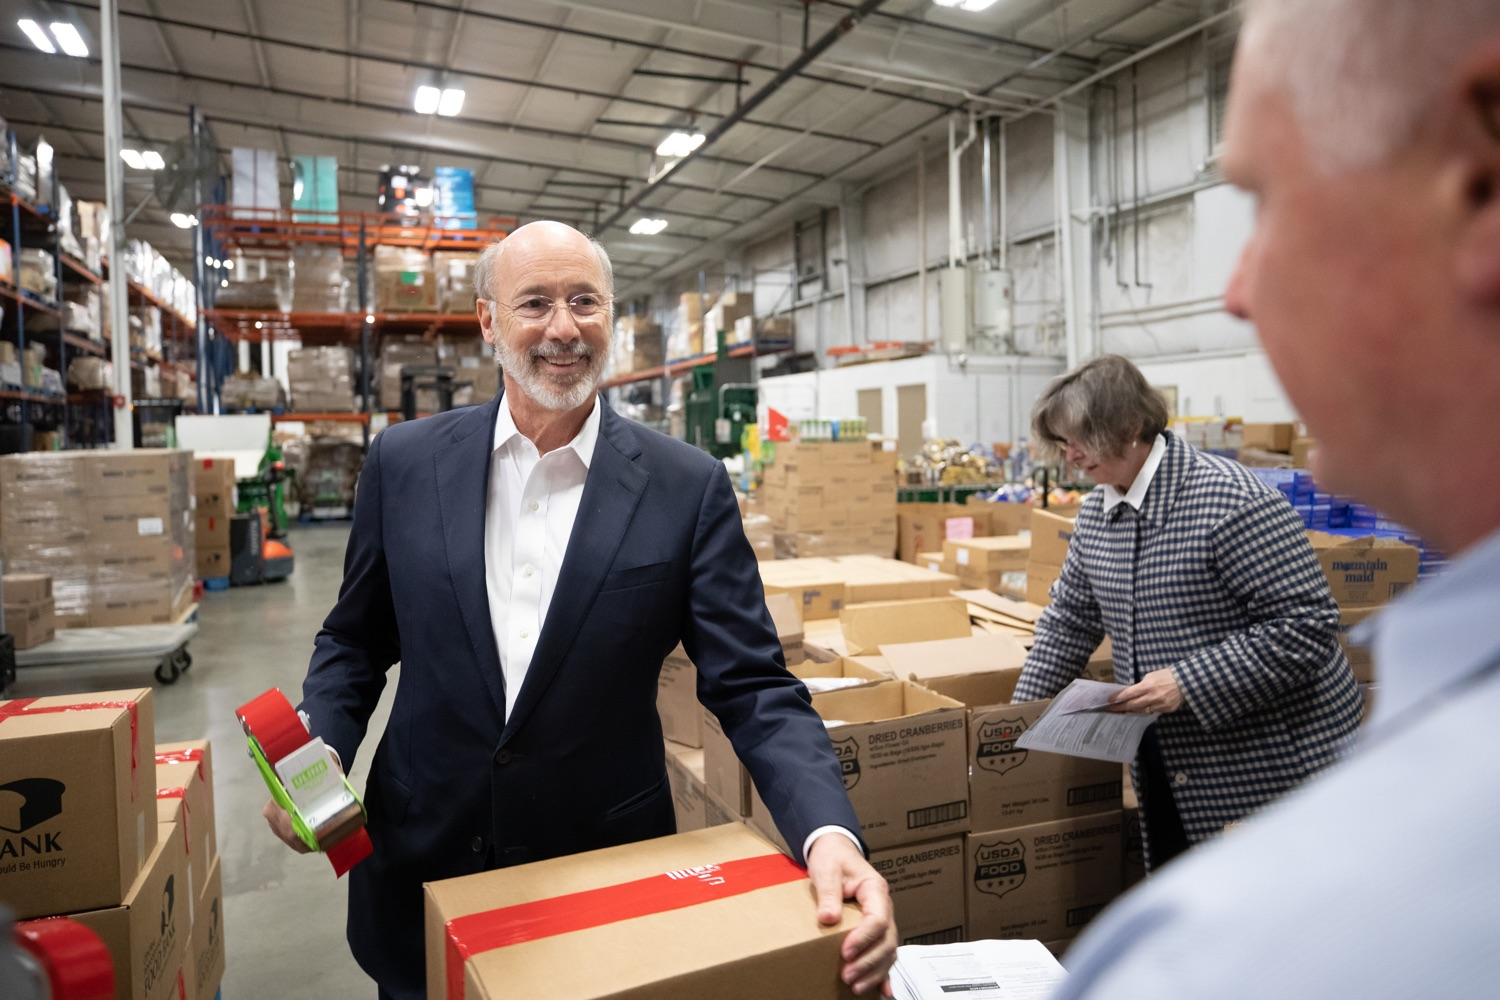 "<a href=""https://filesource.wostreaming.net/commonwealthofpa/photo/17632_gov_foodbank_volunteering_dz_016.jpg"" target=""_blank"">⇣ Download Photo<br></a>Governor Tom Wolf loading boxes of food at the Central Pennsylvania Food Bank.  The governor and first lady visit the Central Pennsylvania Food Bank in Harrisburg to participate in a volunteer project, packing boxes of food for veterans and their families. Ahead of Thanksgiving and the holiday season, Governor Tom Wolf and First Lady Frances Wolf are reminding Pennsylvanians of the importance of helping each other. Harrisburg, PA  Tuesday November 26, 2019"